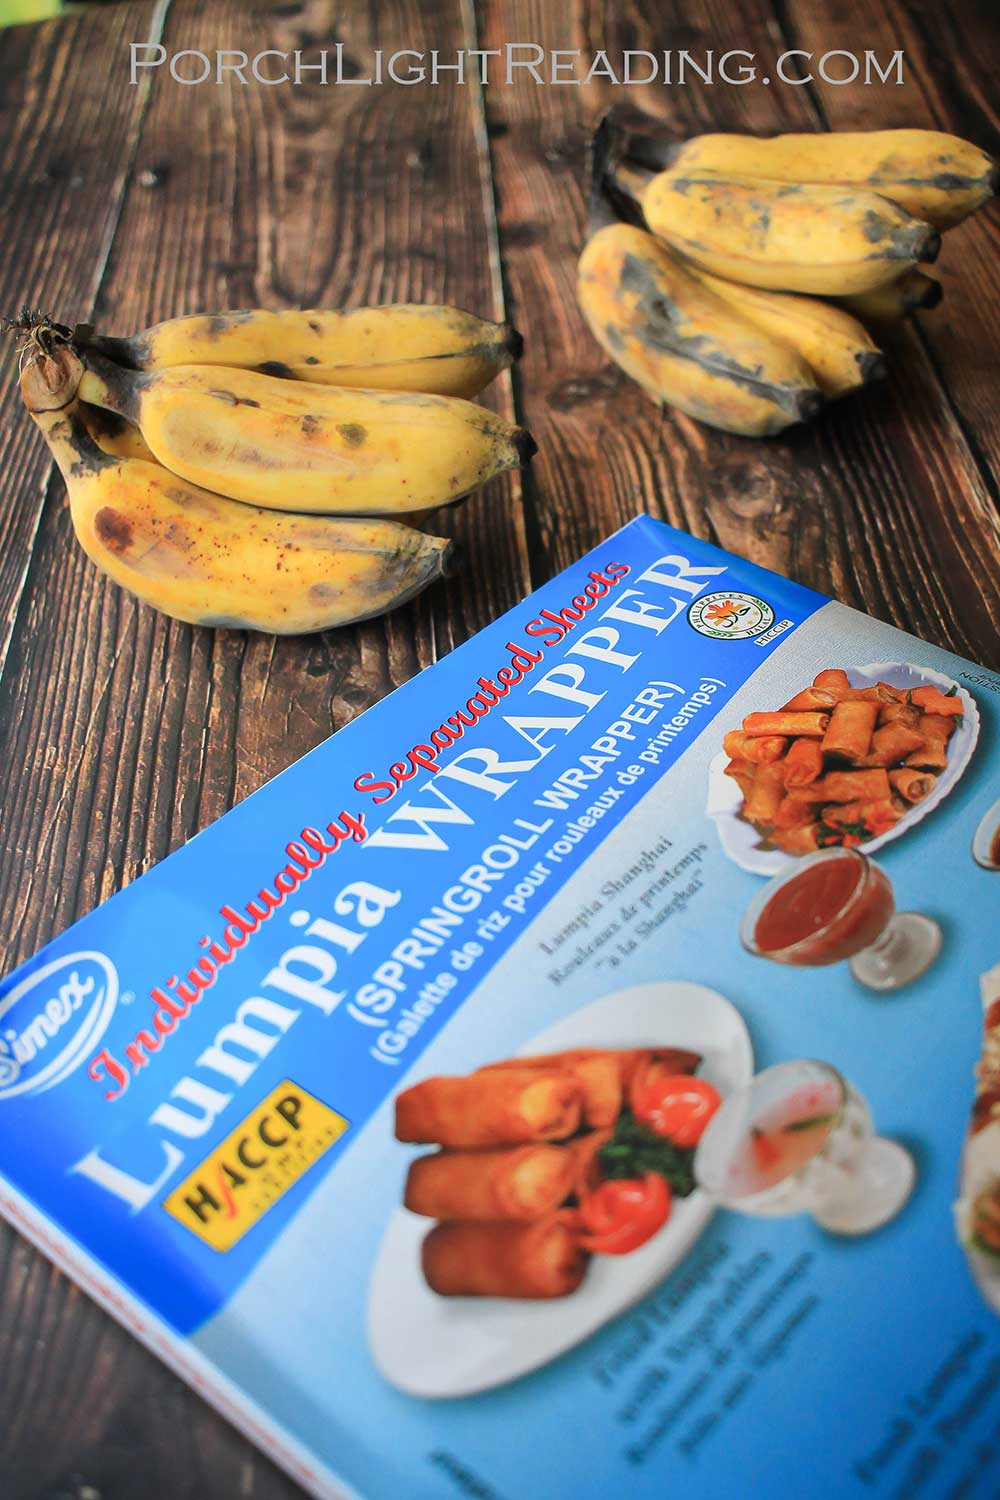 Lumpia wrappers and apple bananas